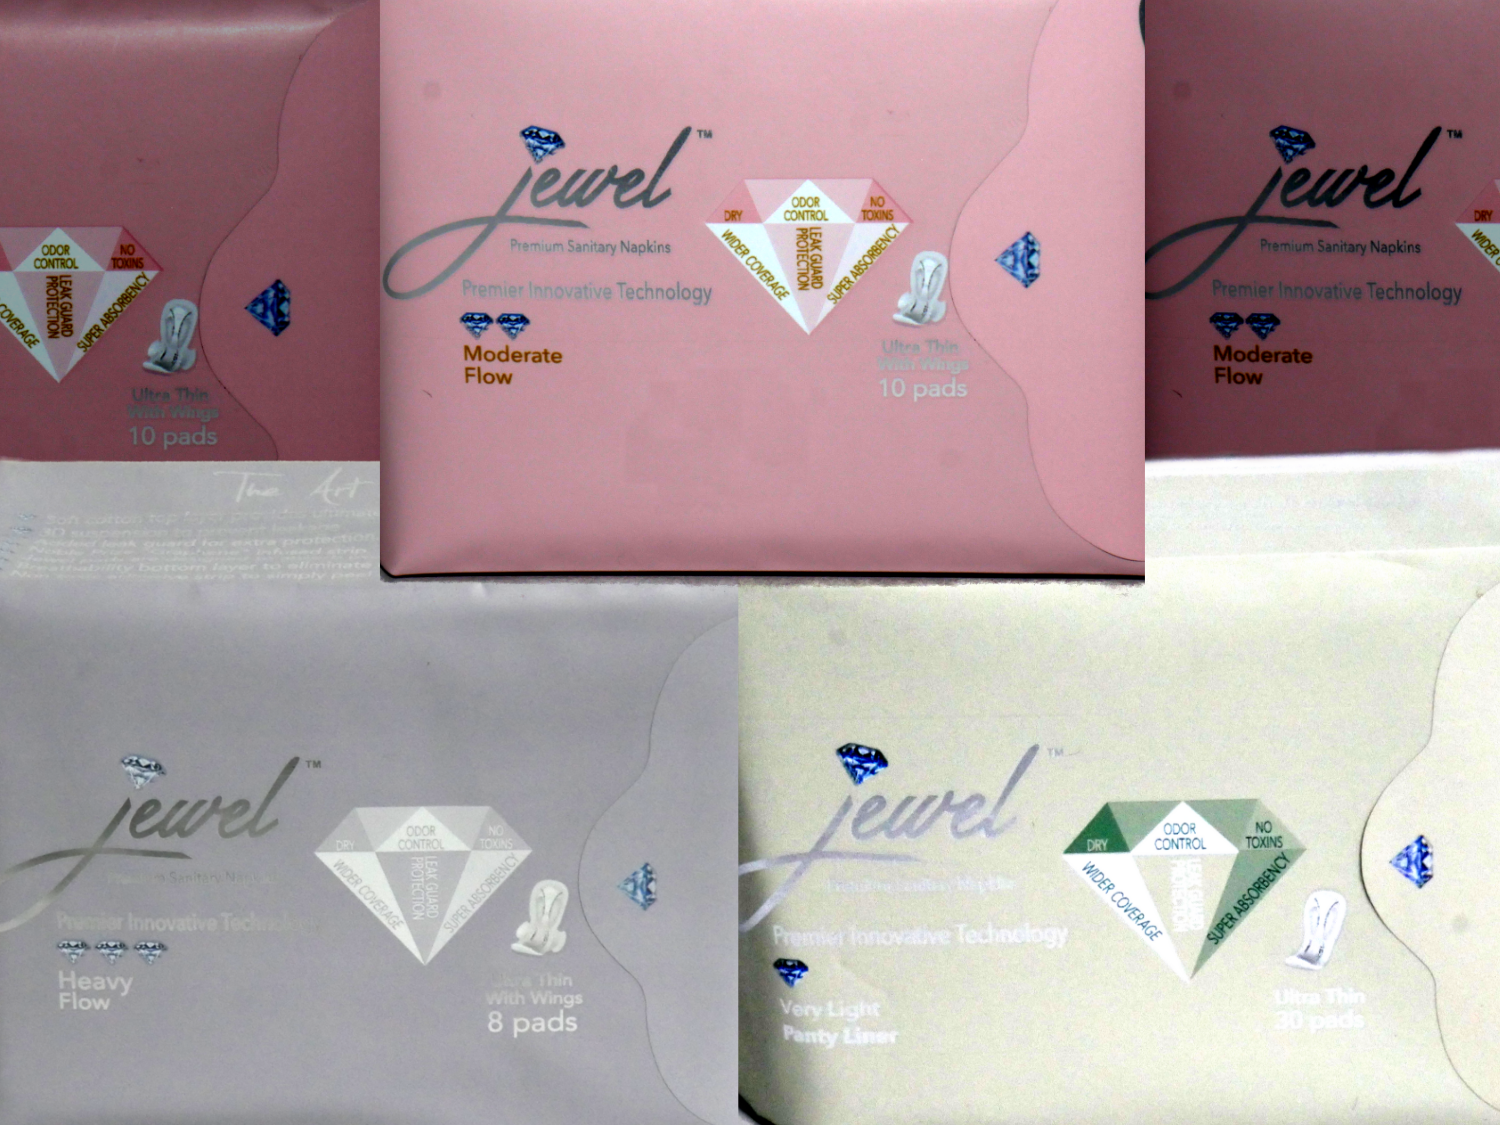 ​JEWEL PADS: TRIO PACK 3 PACKS: 1 PACK OF PANTY LINERS, 1 DAY PACK, 1 NIGHT PACK